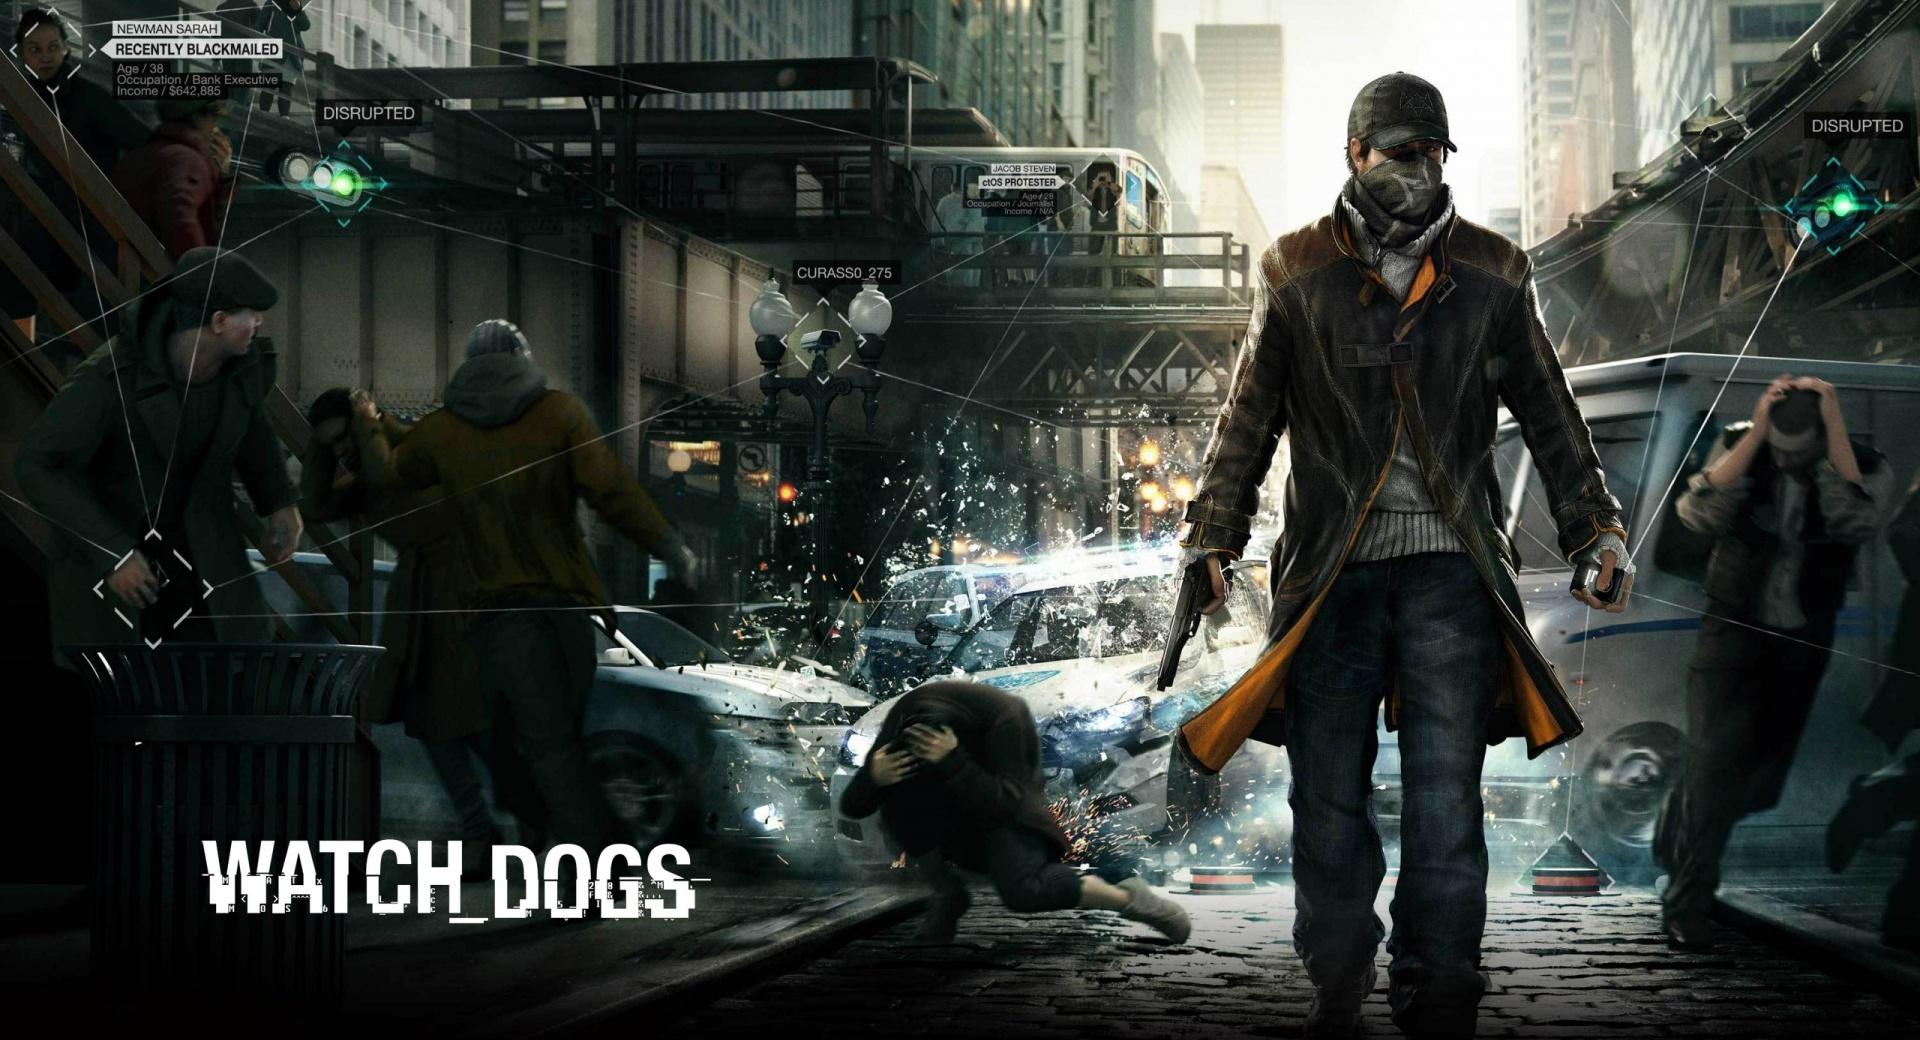 Watch Dogs HD wallpapers HD quality